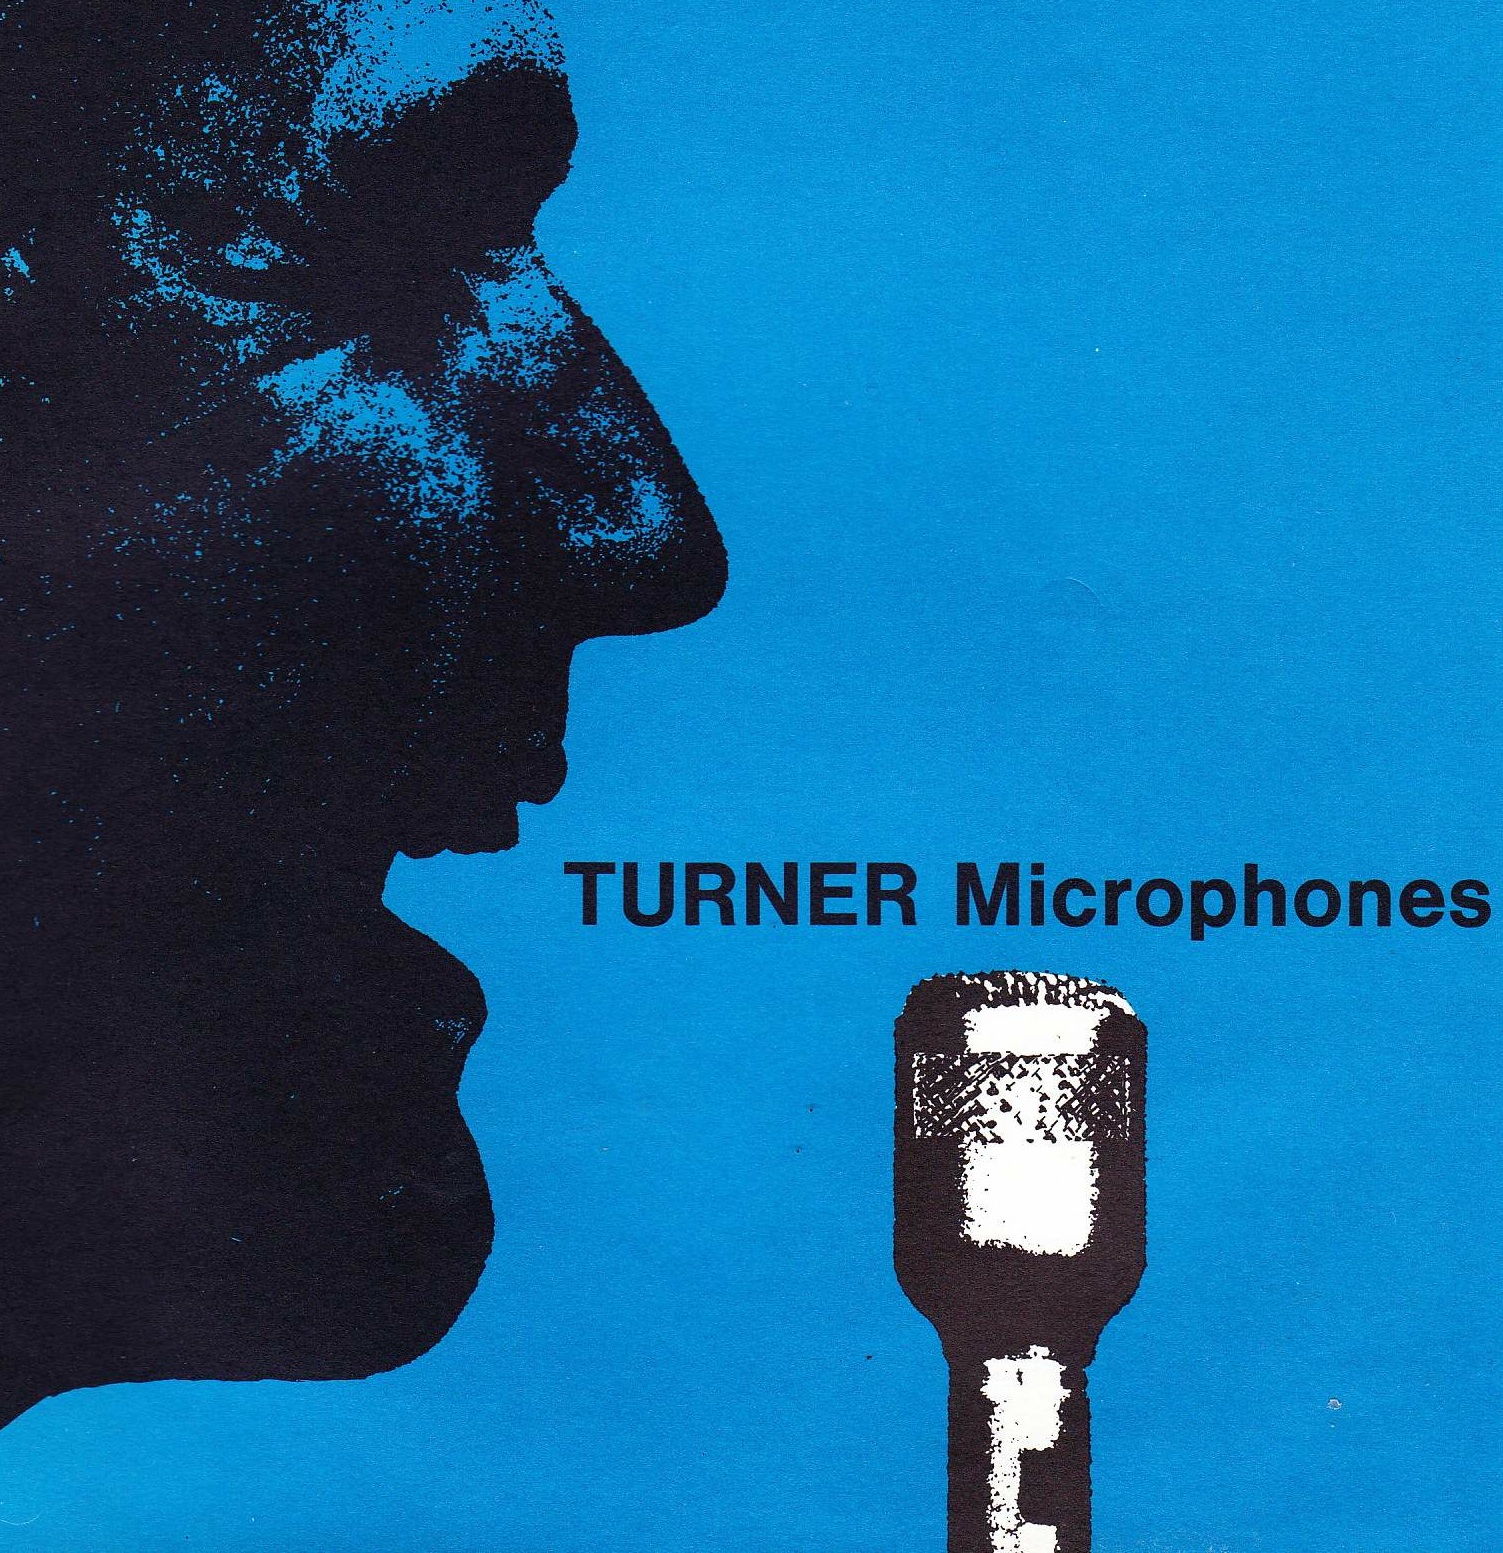 Turner Microphones Circa 1970 Preservation Sound Shure Microphone 4 Pin Wiring Diagram Download